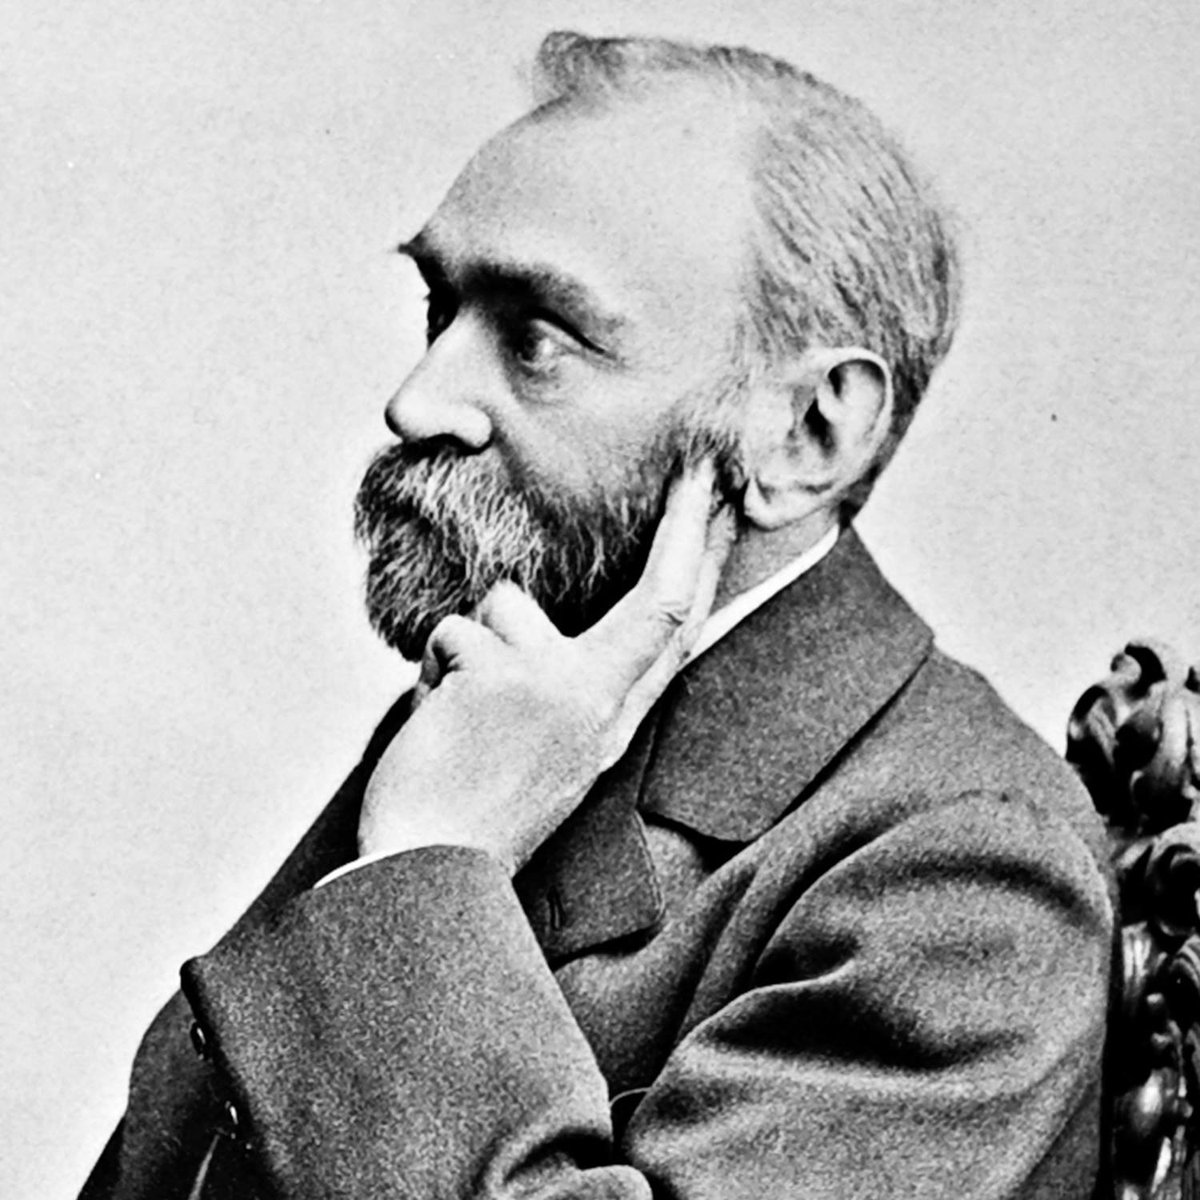 Swedish inventor and philanthropist #AlfredNobel was born on this day...